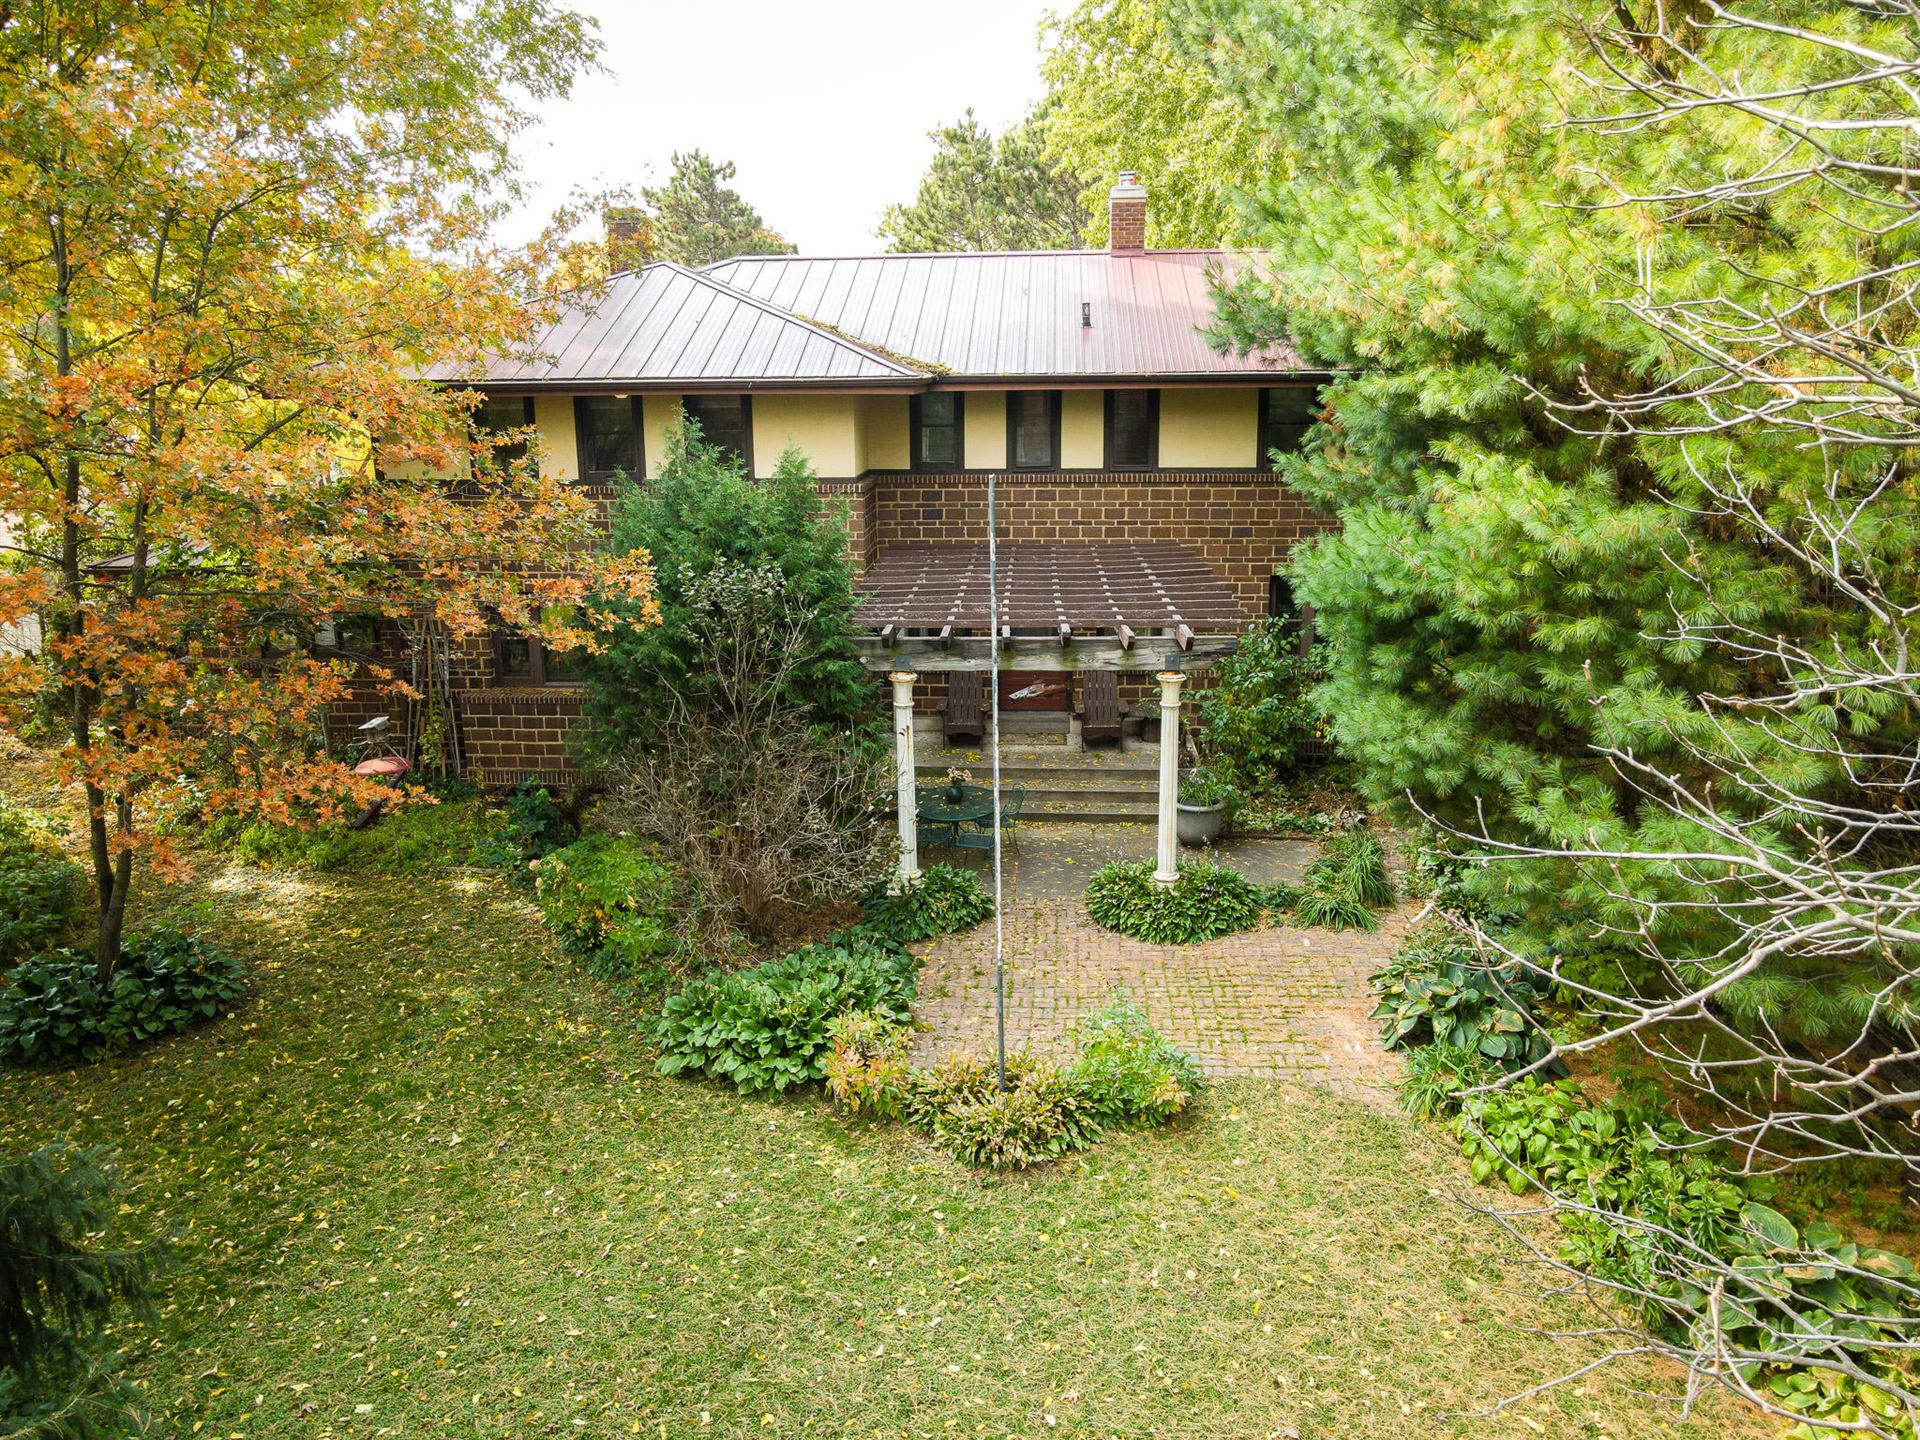 224 Van Ness St N, West Salem, WI 54669 - MLS#: 1713772